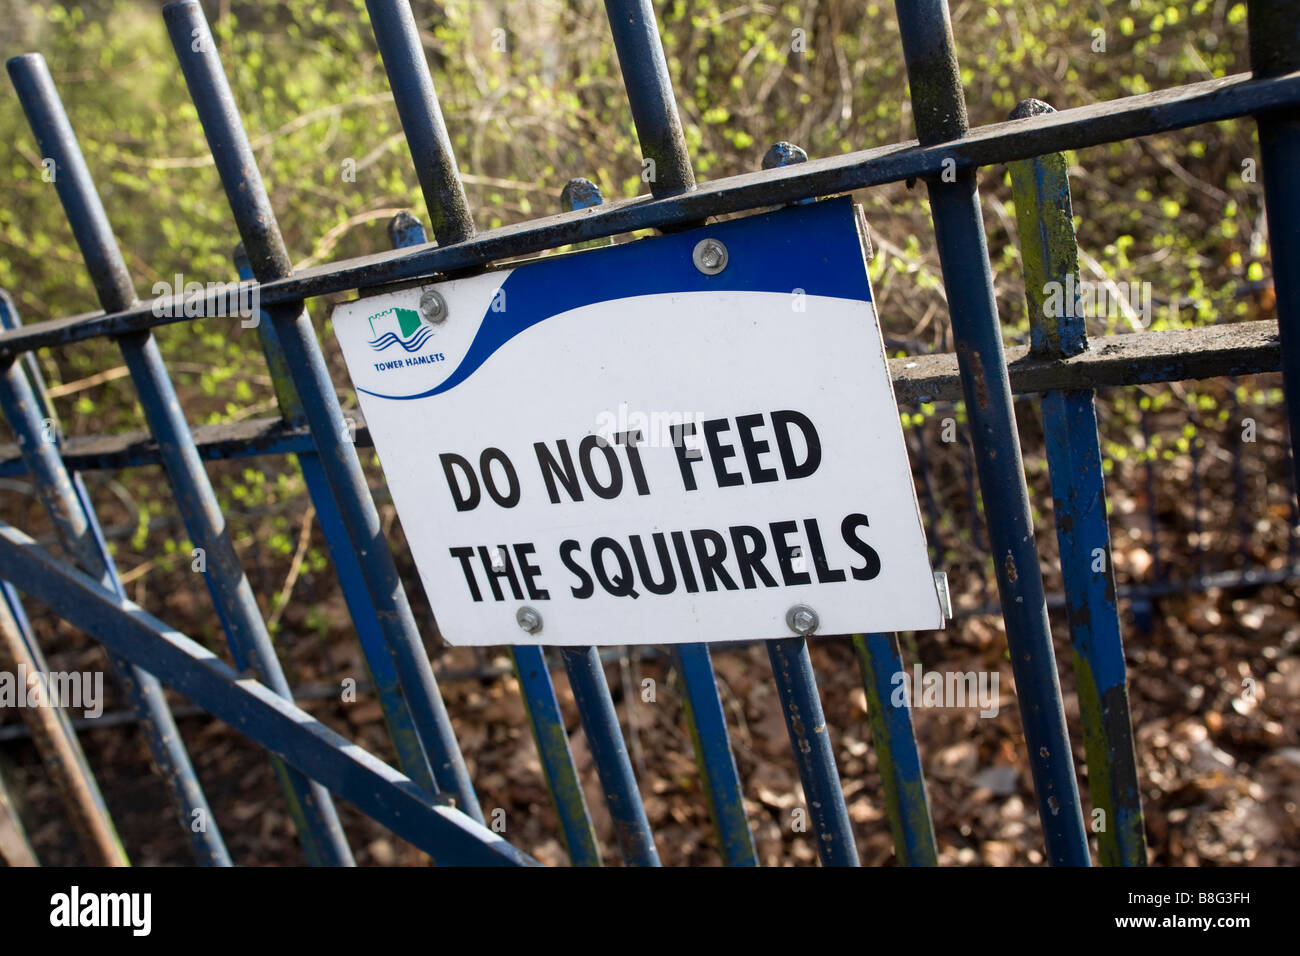 Do not feed the squirrels sign tied to fence - Stock Image